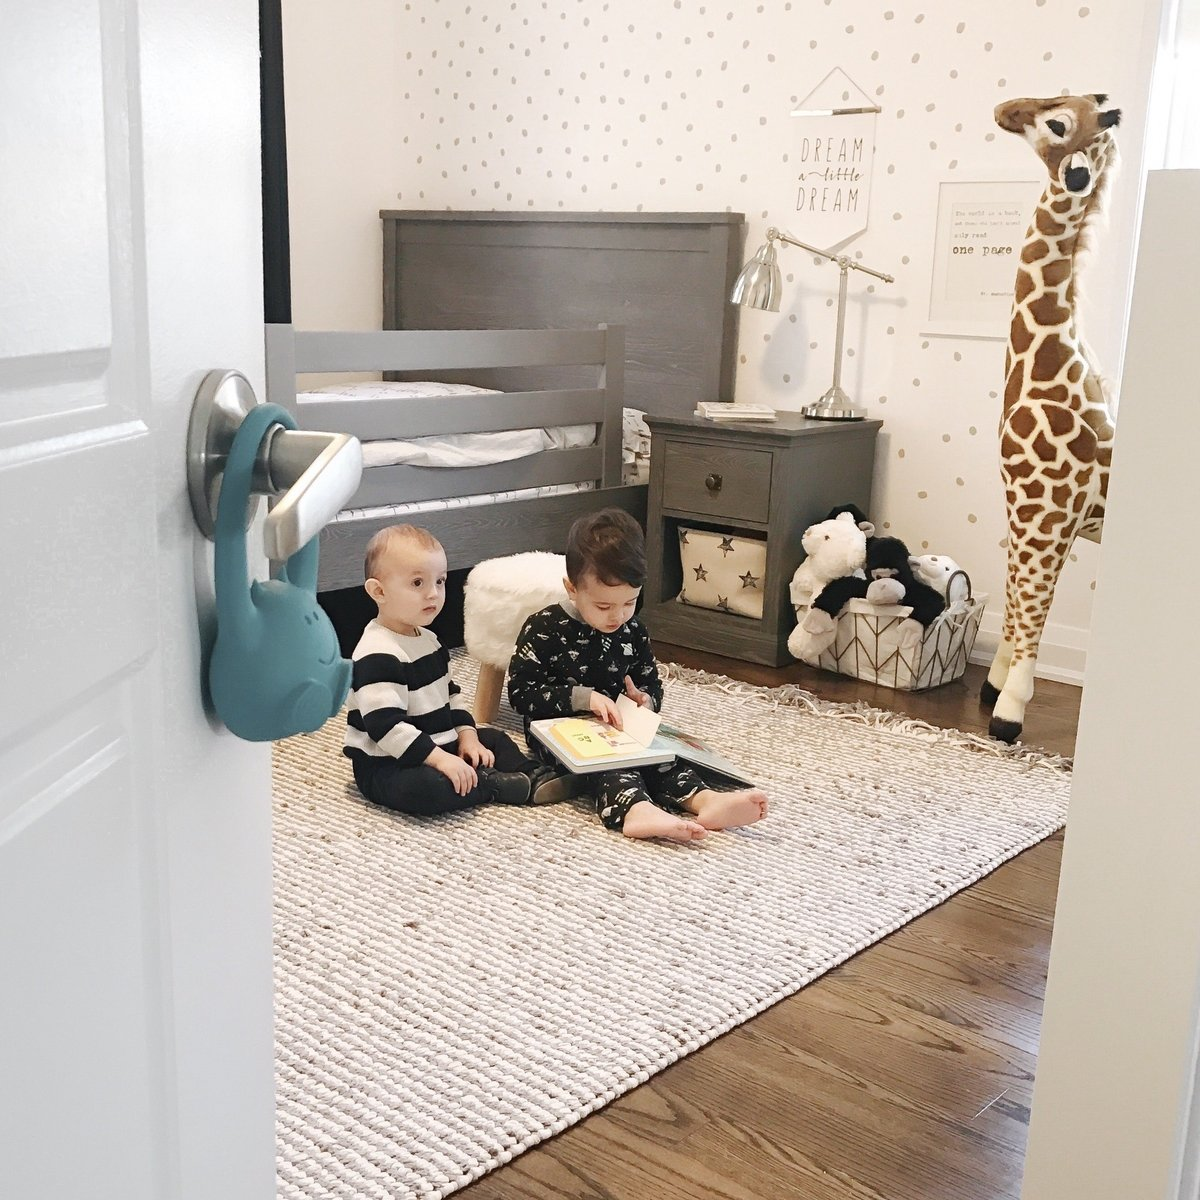 Two young boys reading together in bedroom with DECCO Toddler Monitor on doorknob